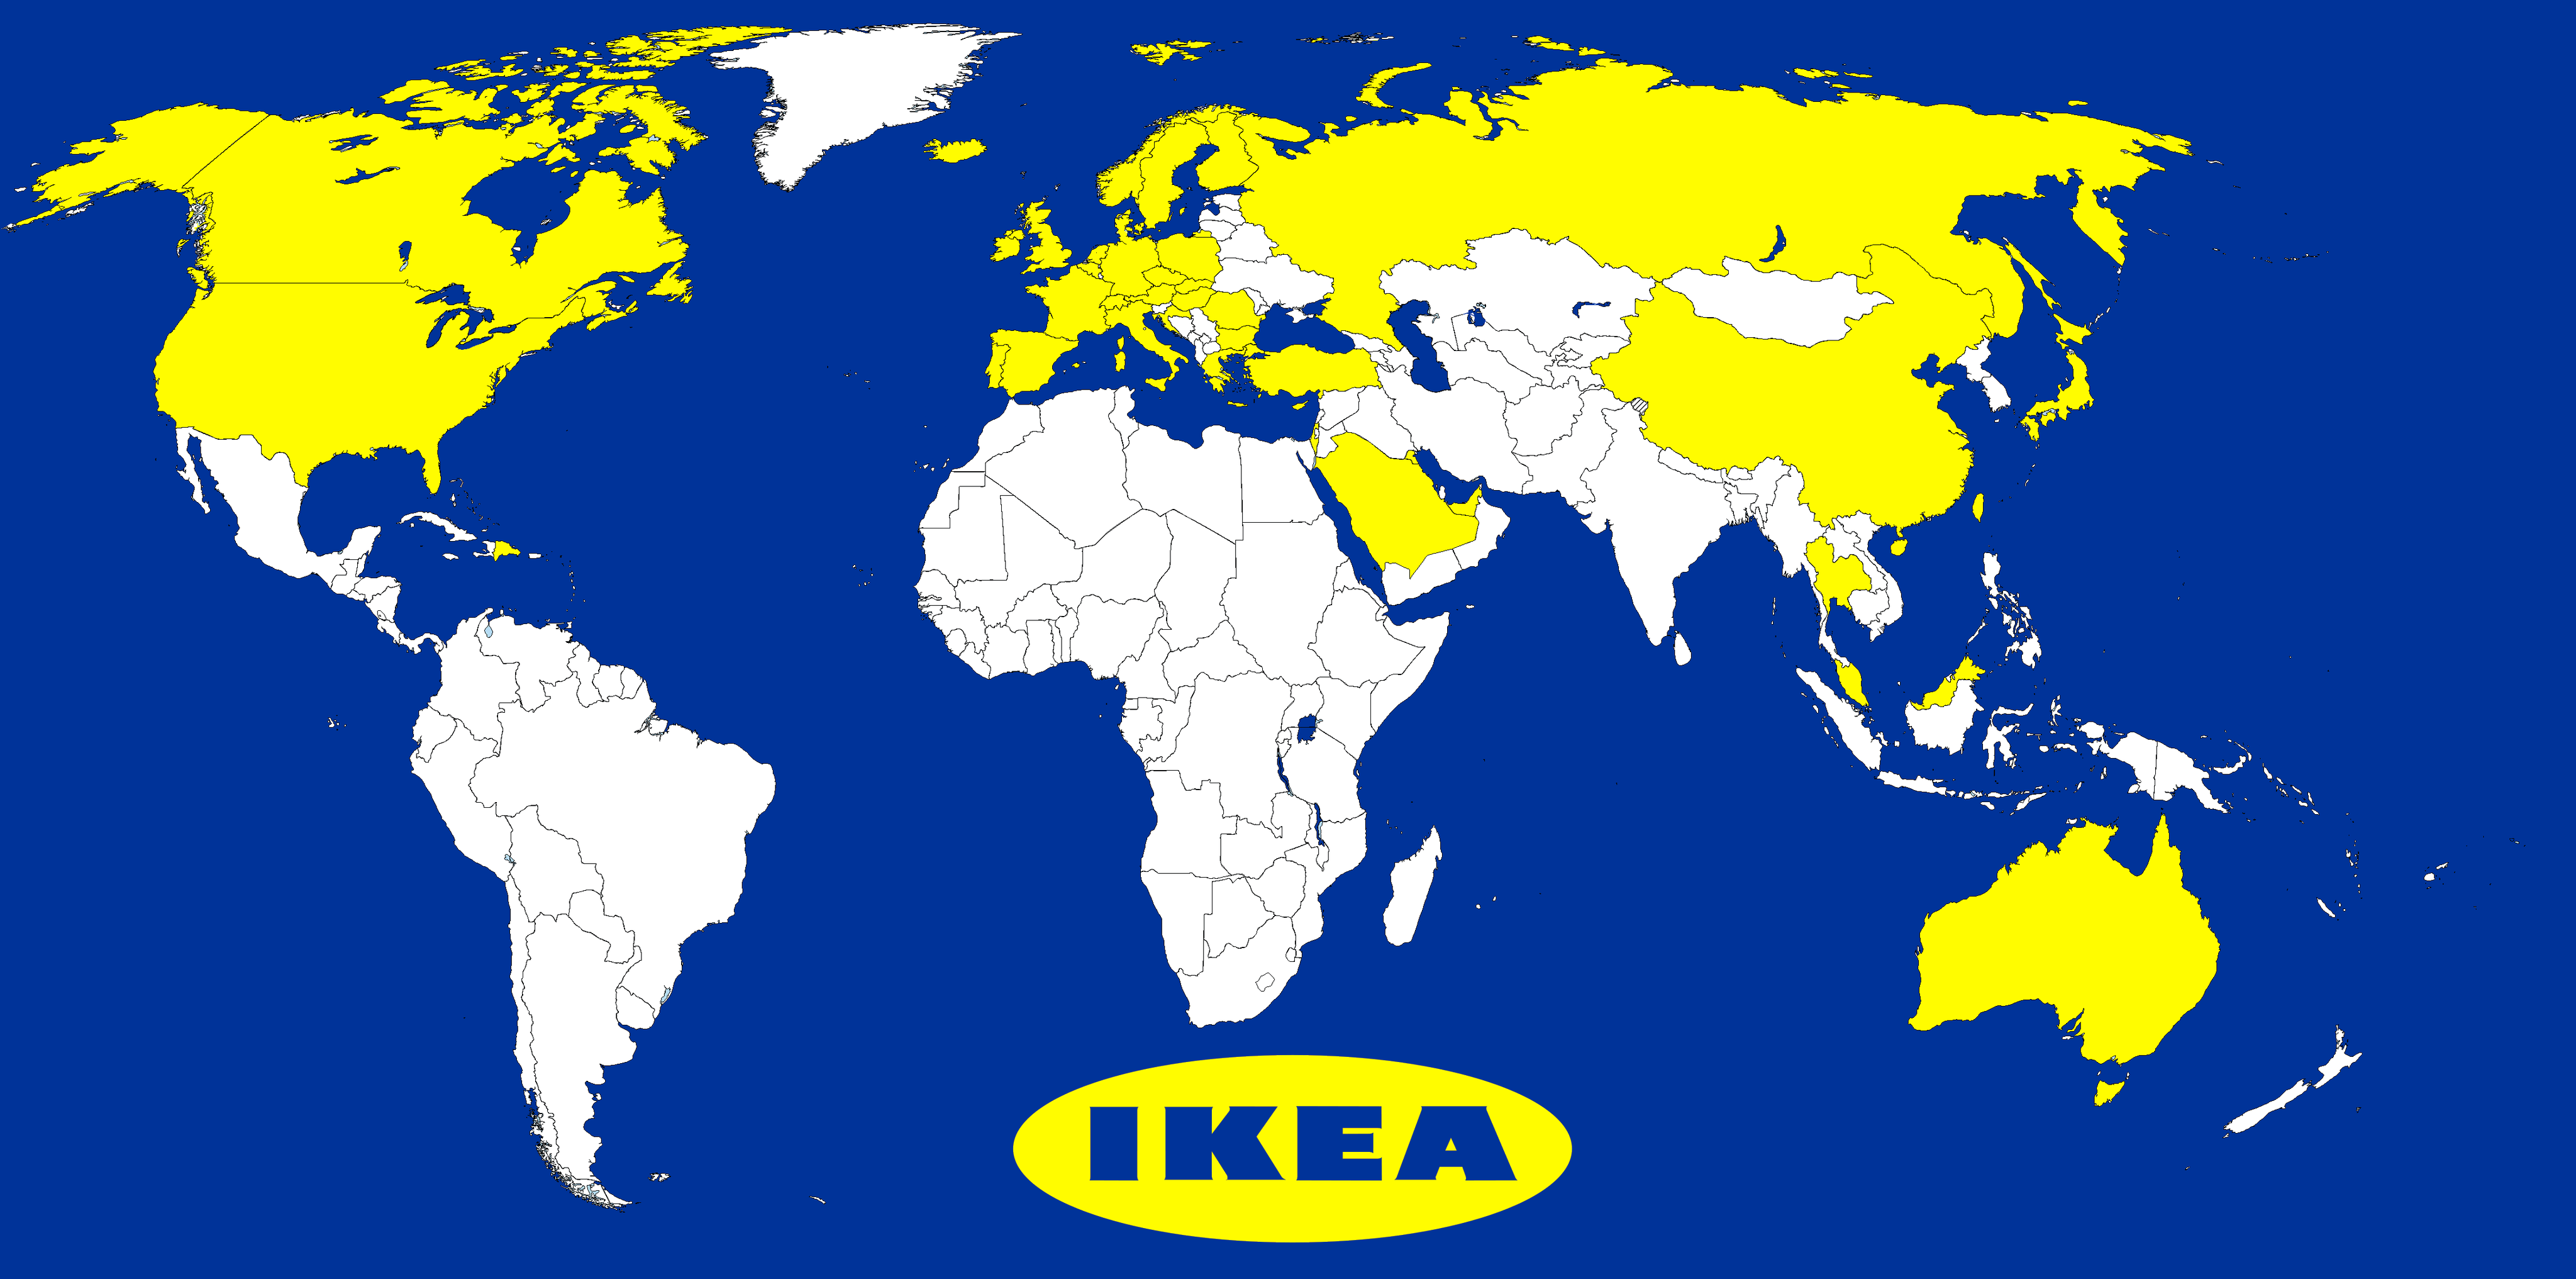 IKEA's localisation methods have been hugely successful all over the world